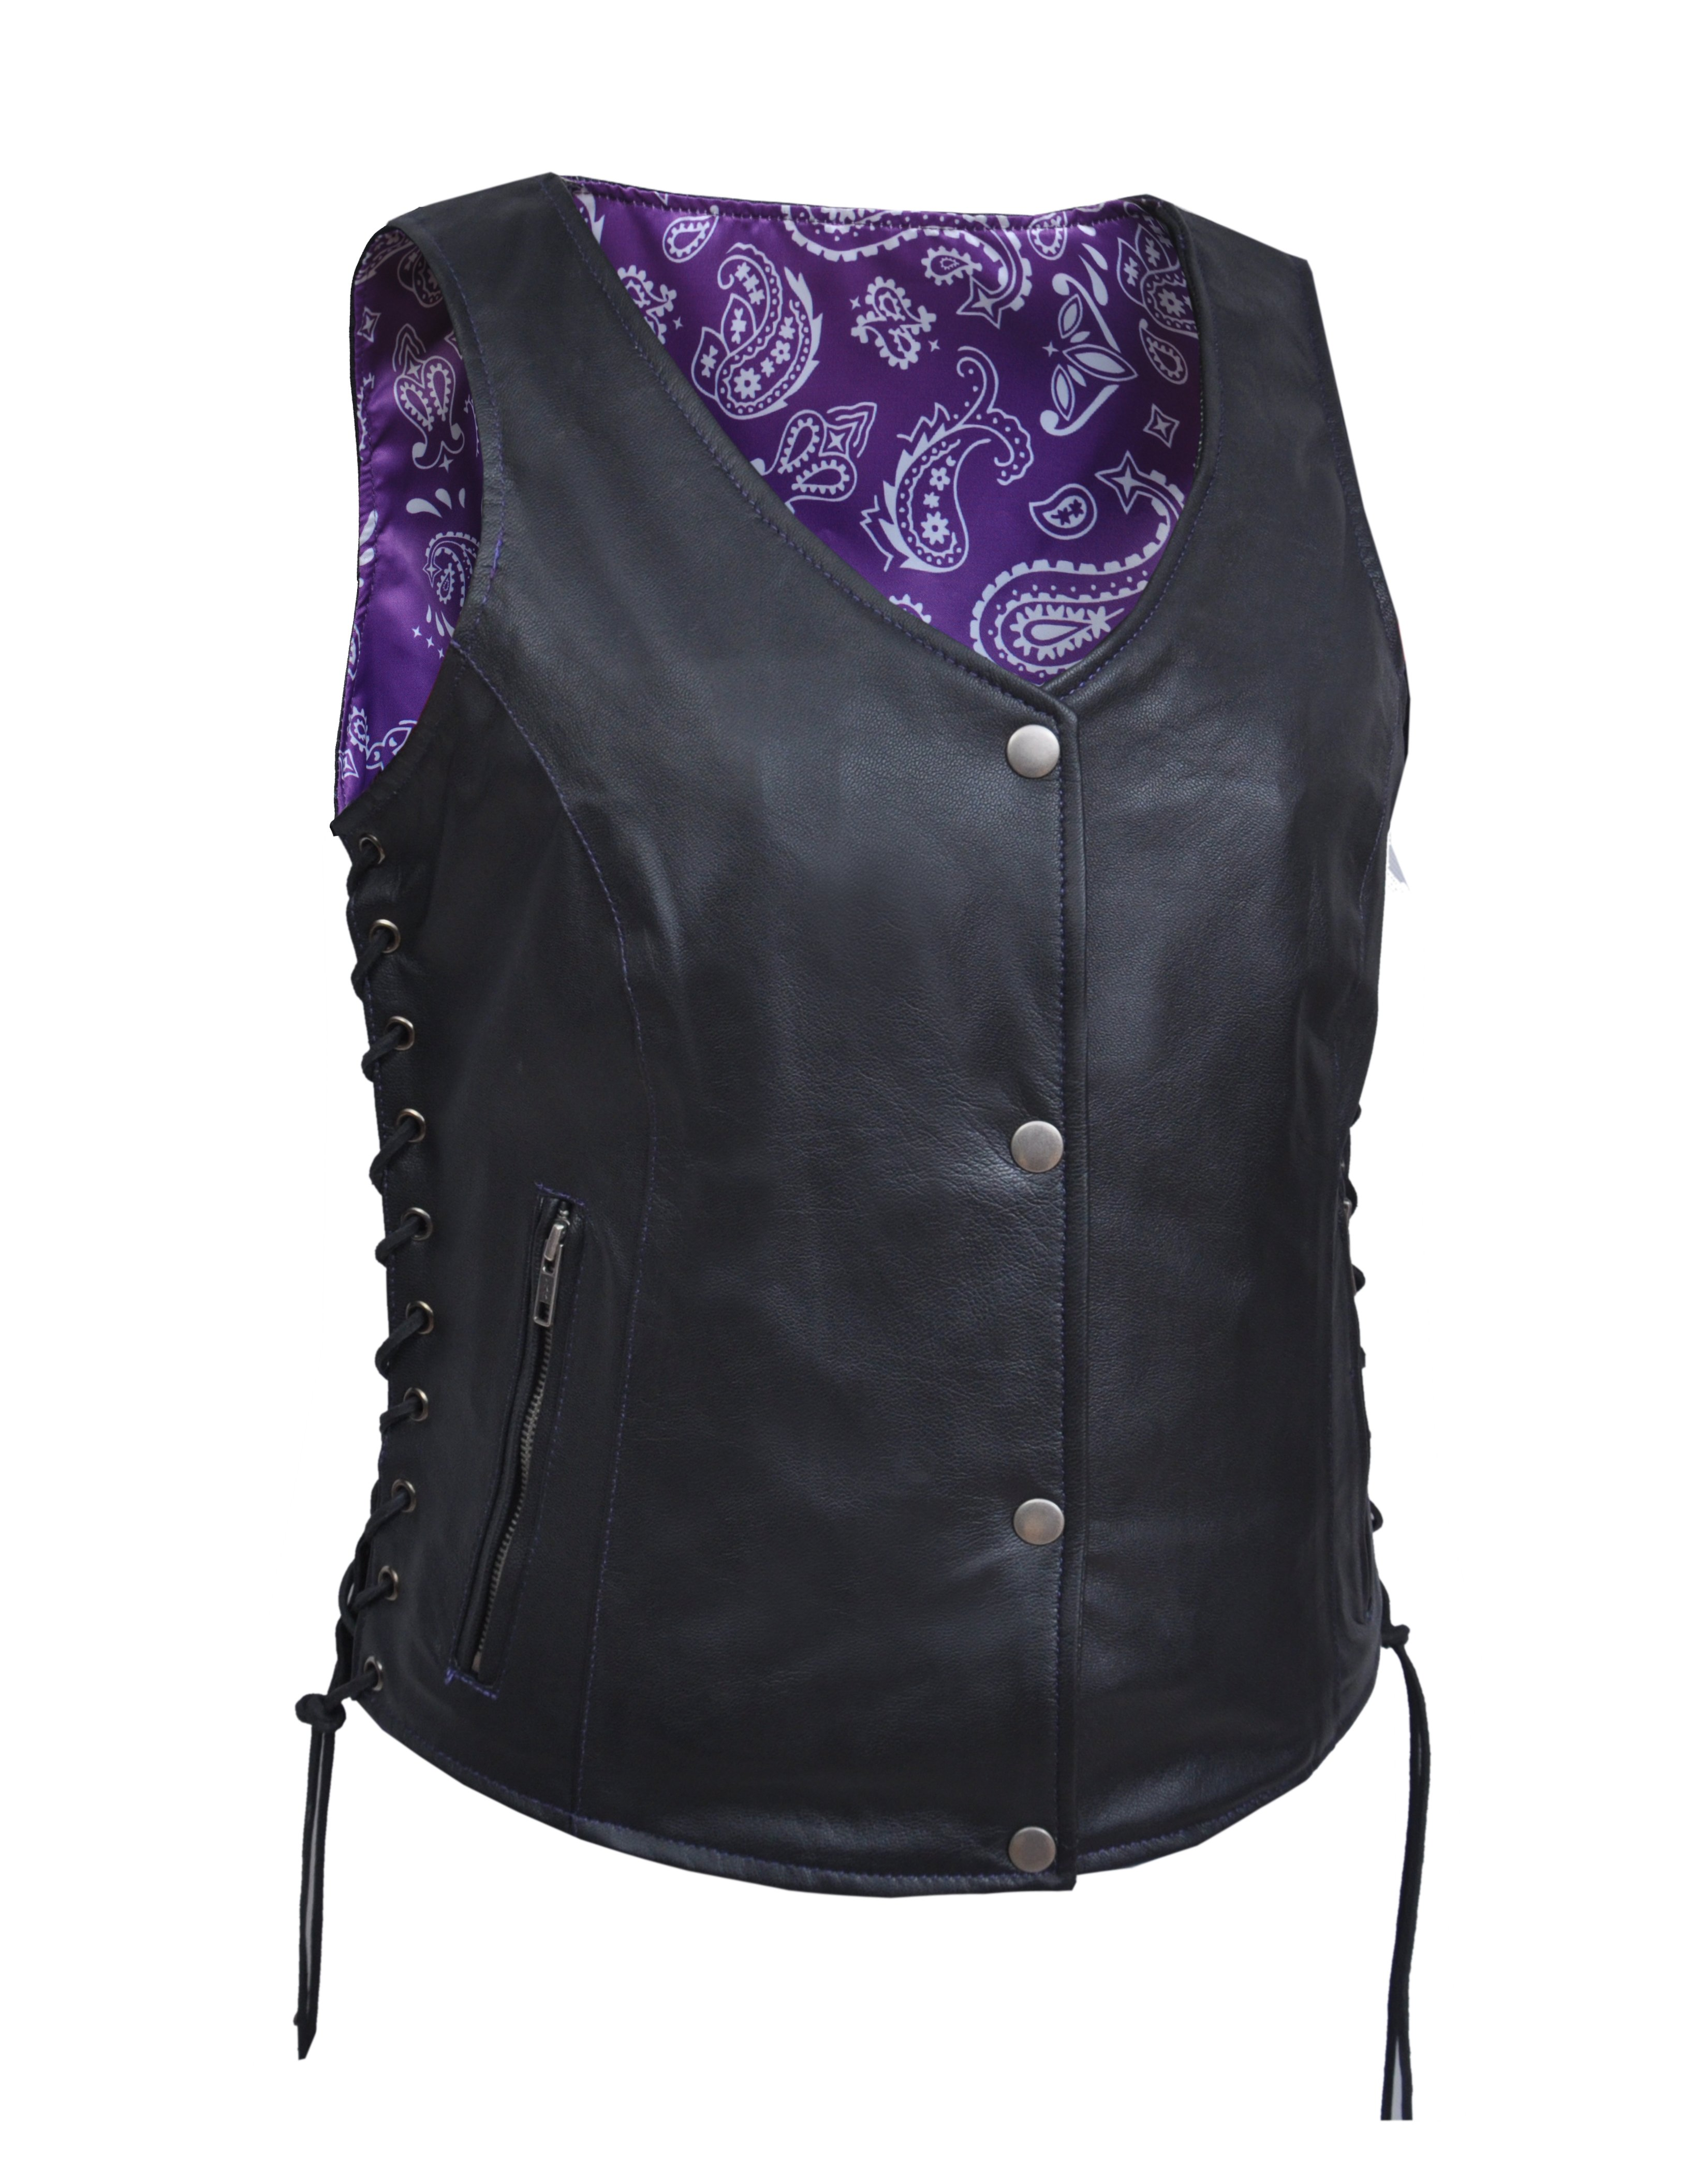 Women's Leather Motorcycle Vest With Purple Paisley Lining - Ladies Vest - SKU 6890-17-UN